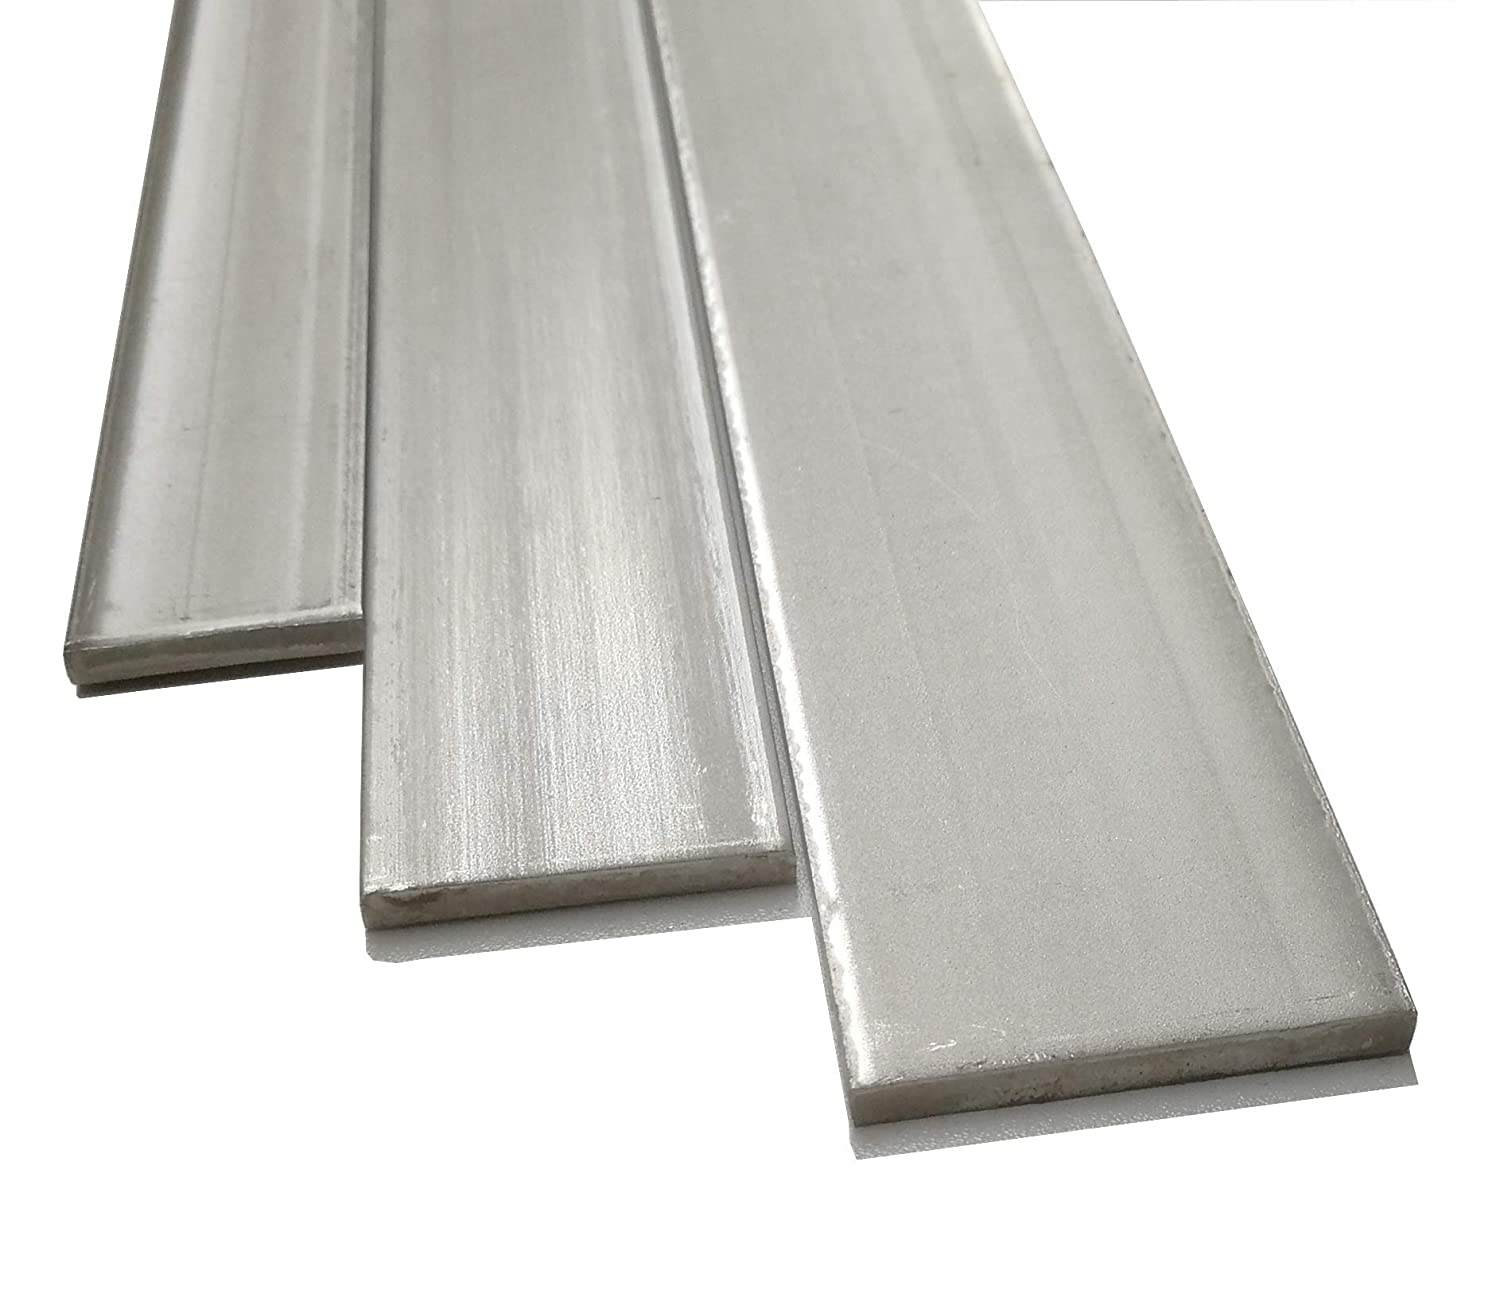 Stainless Steel 1 to 3mm Brushed 1000mm 1500mm 1.4301 v2a Blanks Plate